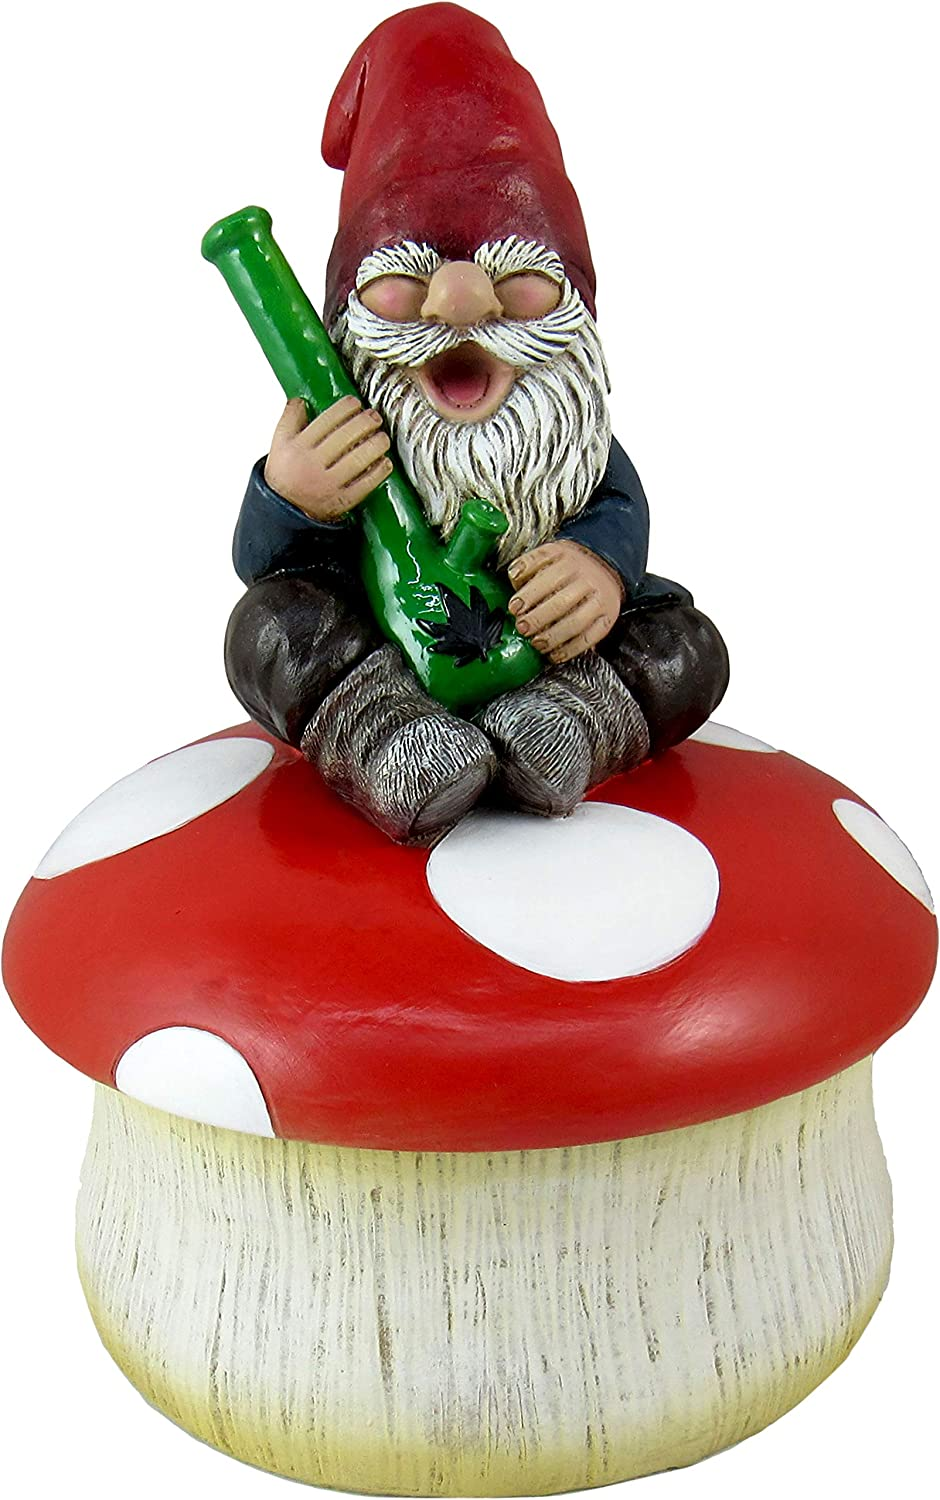 World of Wonders - Gnaughty Gnomes Series - Gnome Grown Stash - Collectible Stoner Gnome on Mushroom Holding Bong Cannabis Pot Leaf Jewelry Trinket Keepsake Box 420 Home Decor Accent, 7-inch